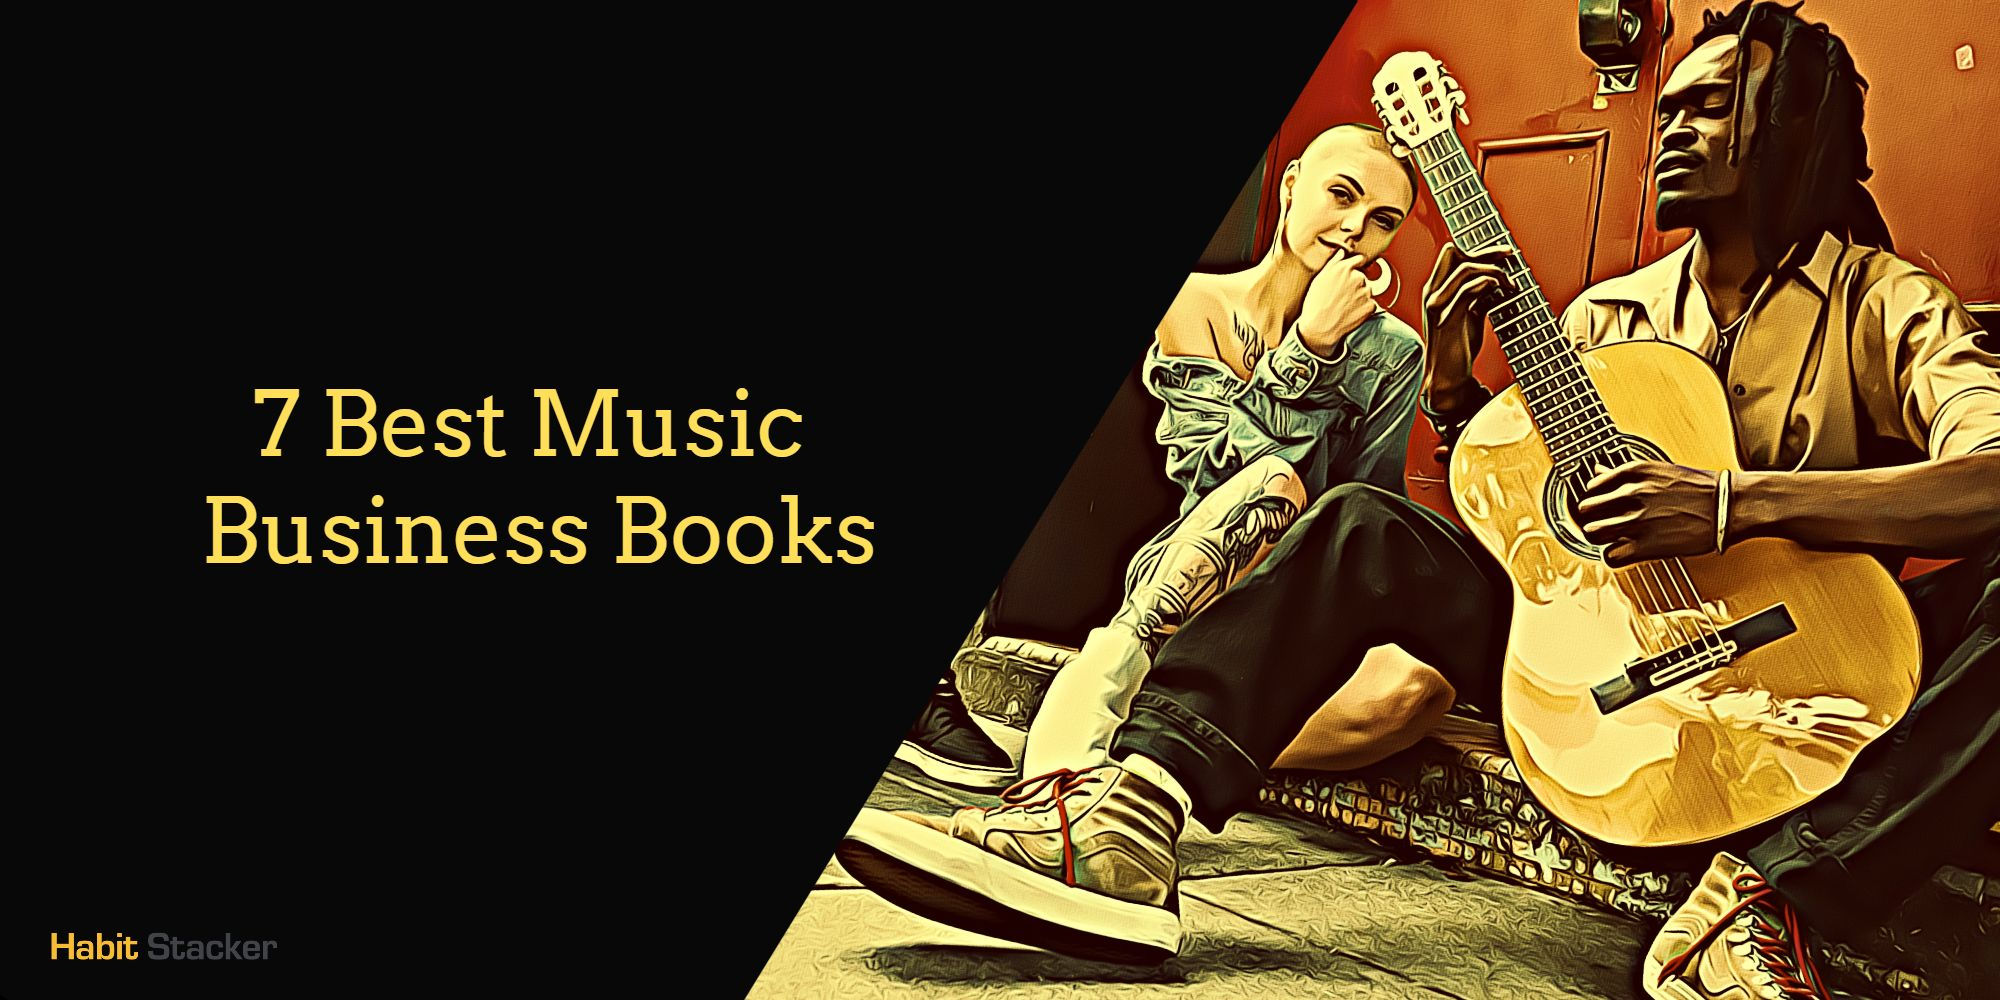 Best Music Business Books